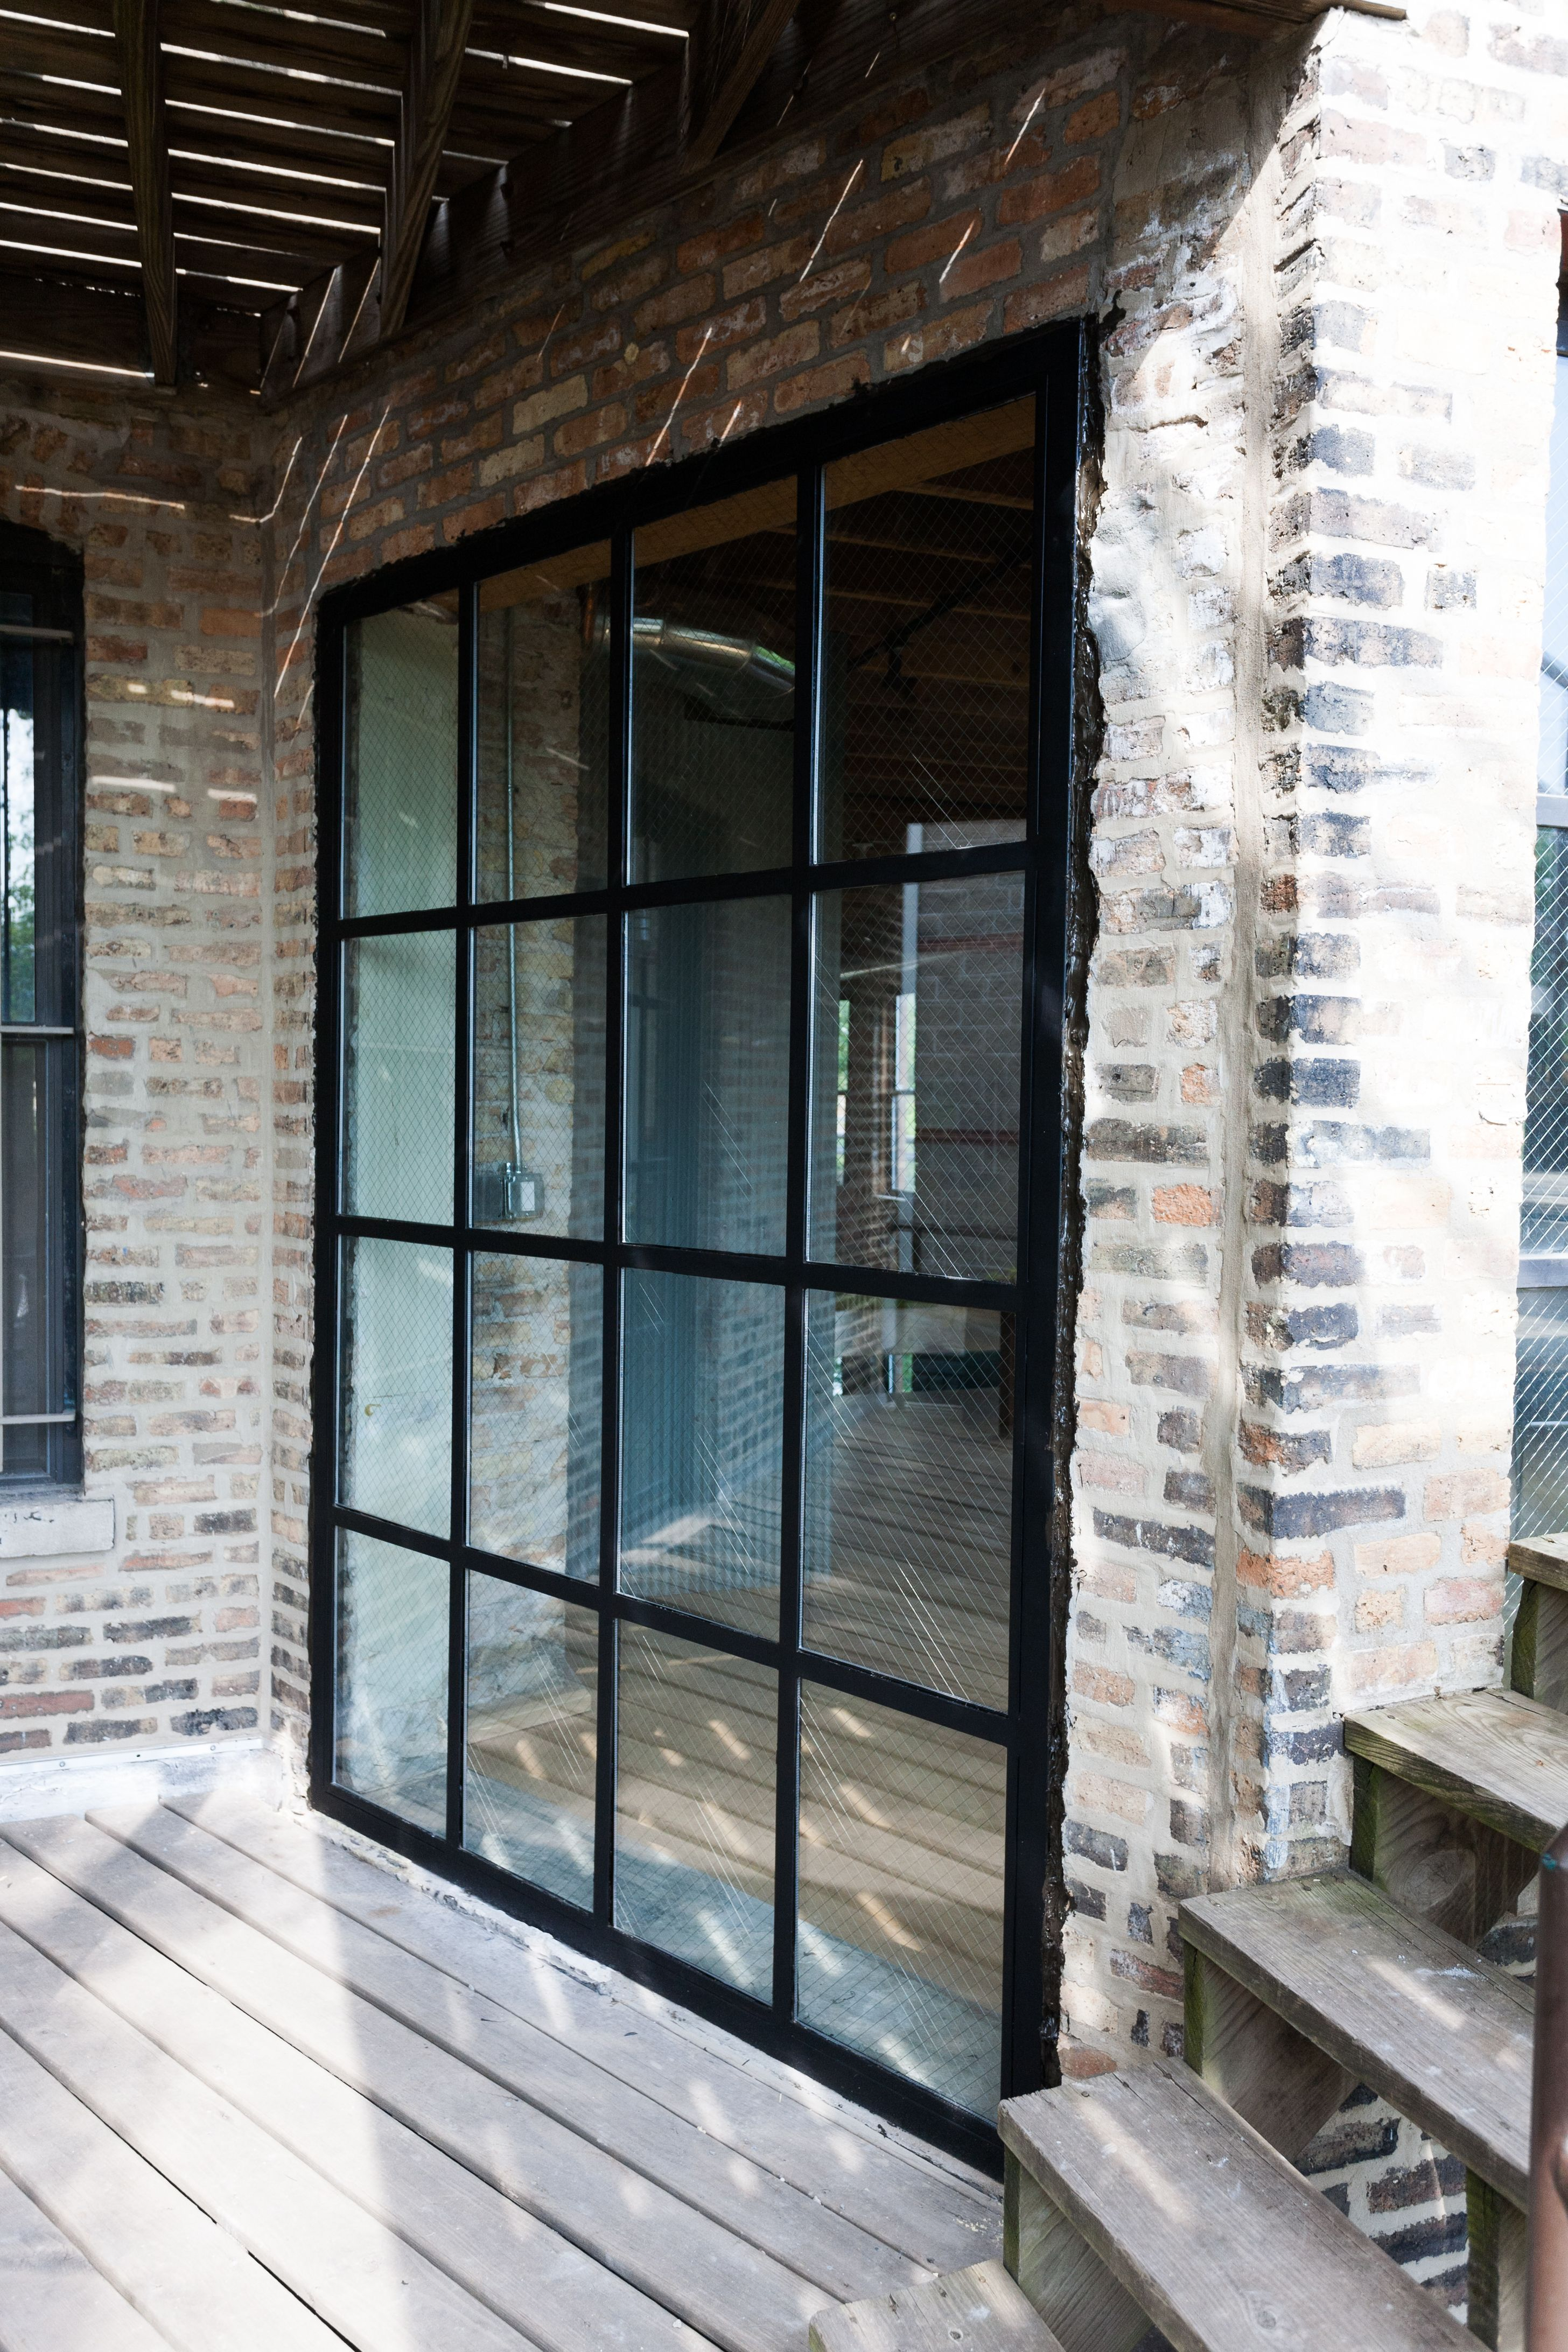 Steel And Glass Wall Makes For A Big Window Home Renovation Steel And Glass Wall Iron Door Steel And Glass Room Divide Glass Wall Iron Doors Modern Windows